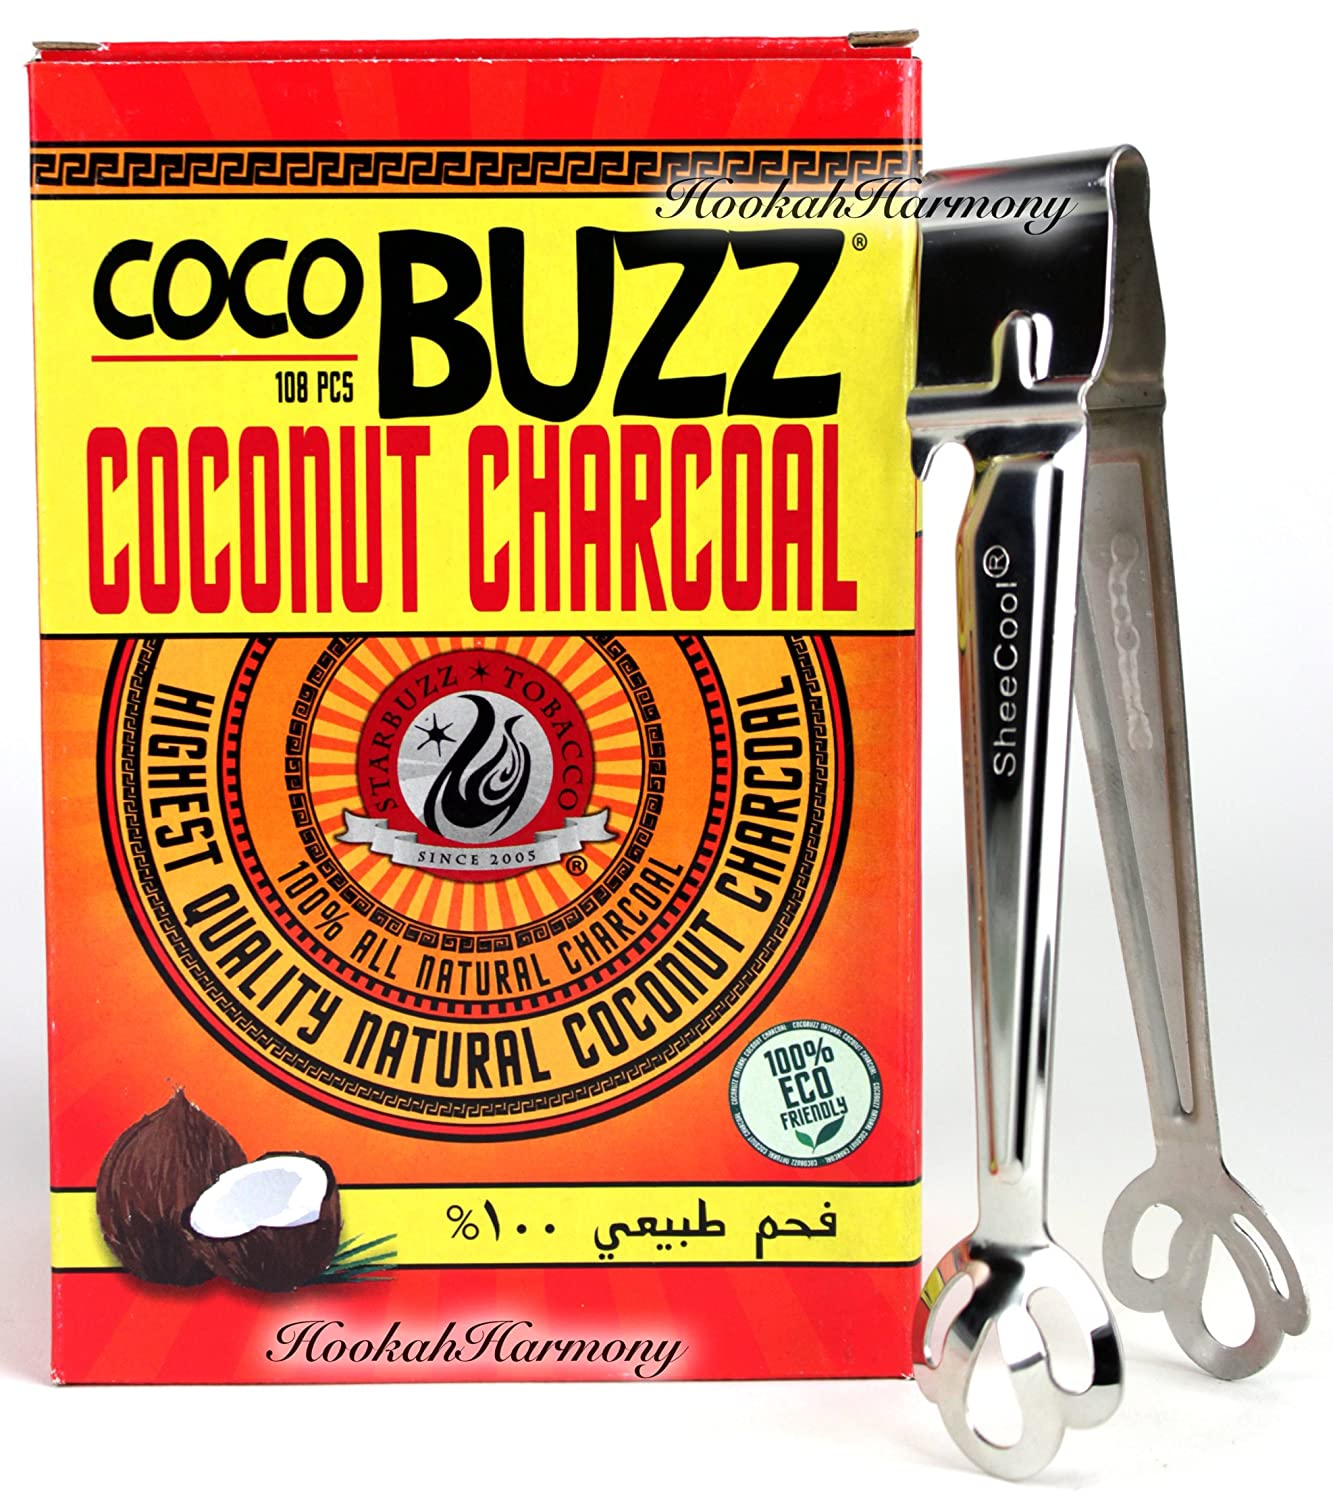 Starbuzz Cocobuzz Coconut Charcoal 108 Pcs BONUS Sheecool Tongs